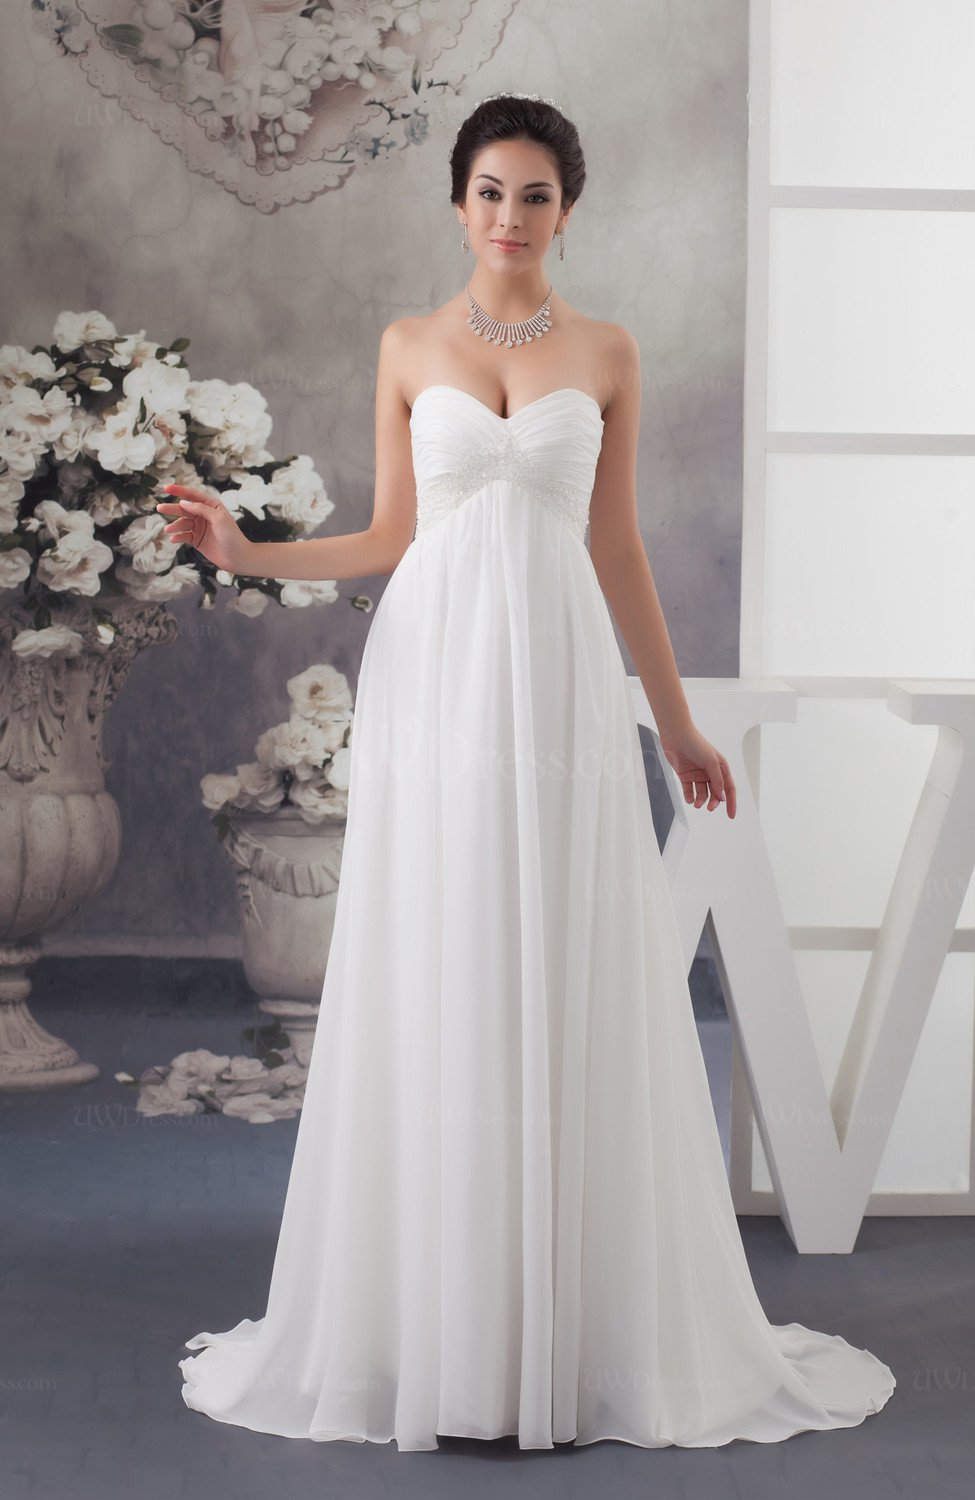 Maternity Bridal Gowns Inexpensive Sweetheart Fall Full ...